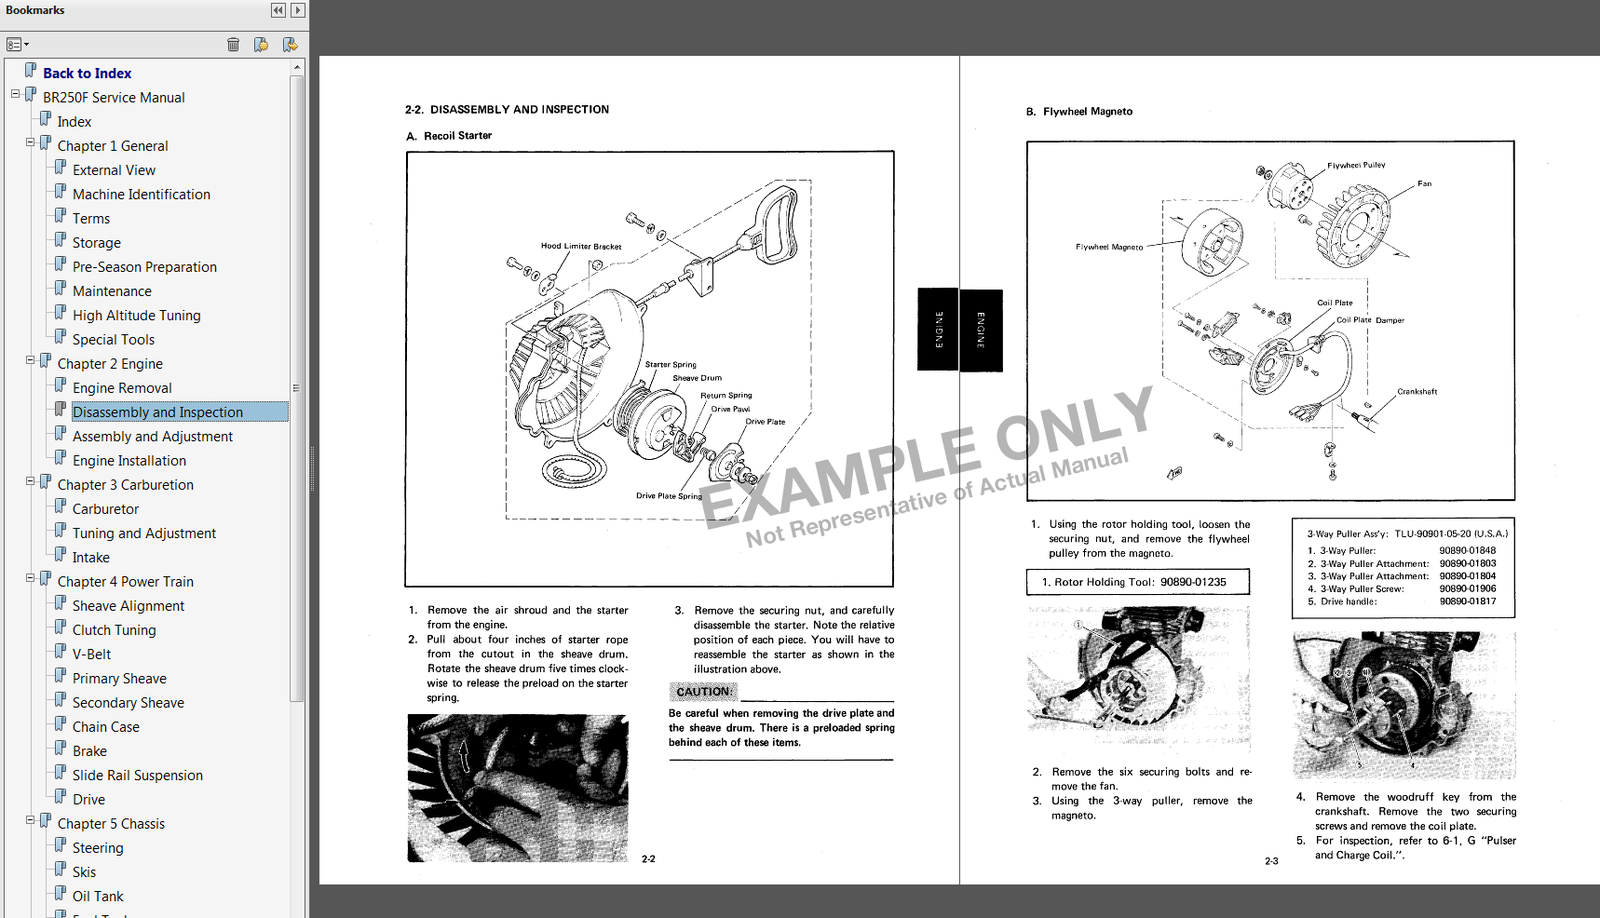 1977 yamaha enticer 250 wiring diagram 1994-1996 yamaha vmax 500/600 snowmobile service manual ... yamaha snowmobile 250 wiring diagram #14